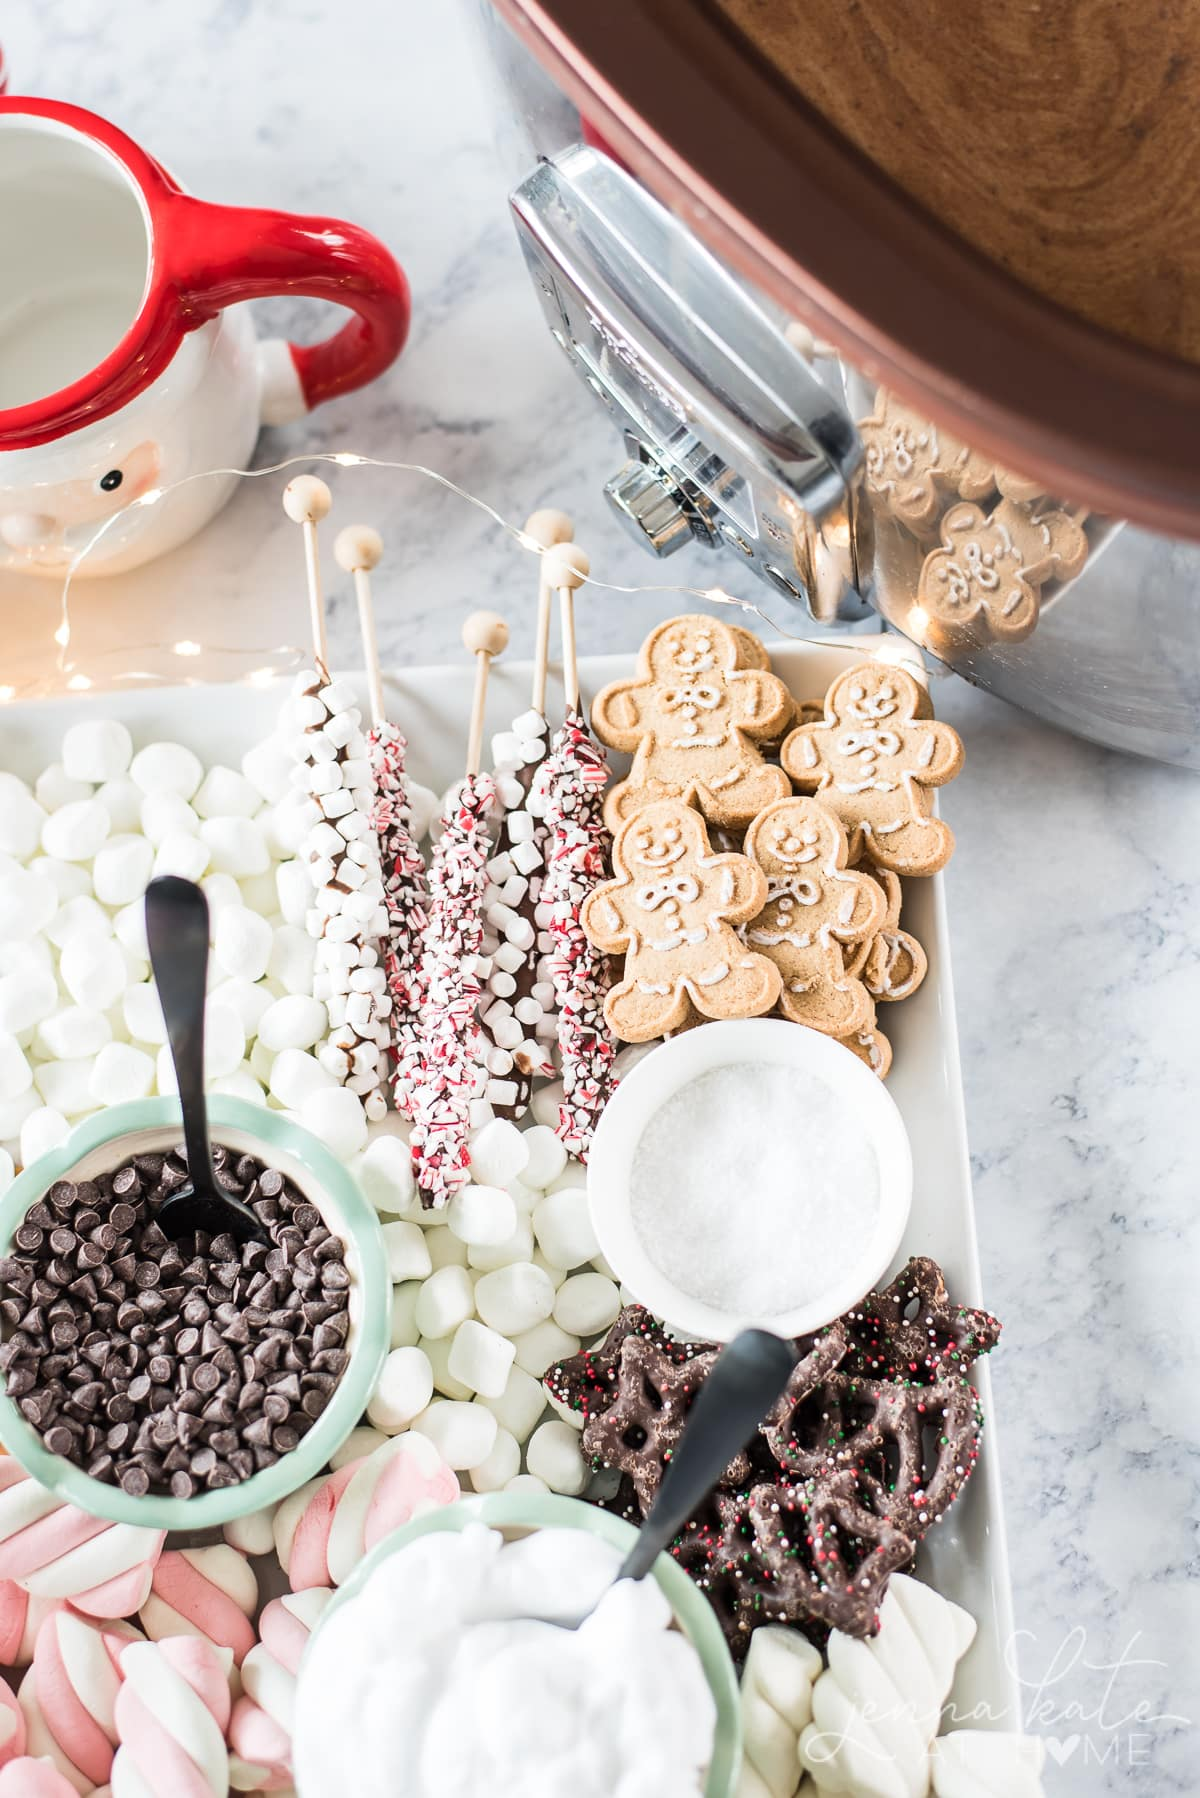 this easy Dessert Charcuterie Board has all the perfect accessories for a delicious cup of hot chocolate